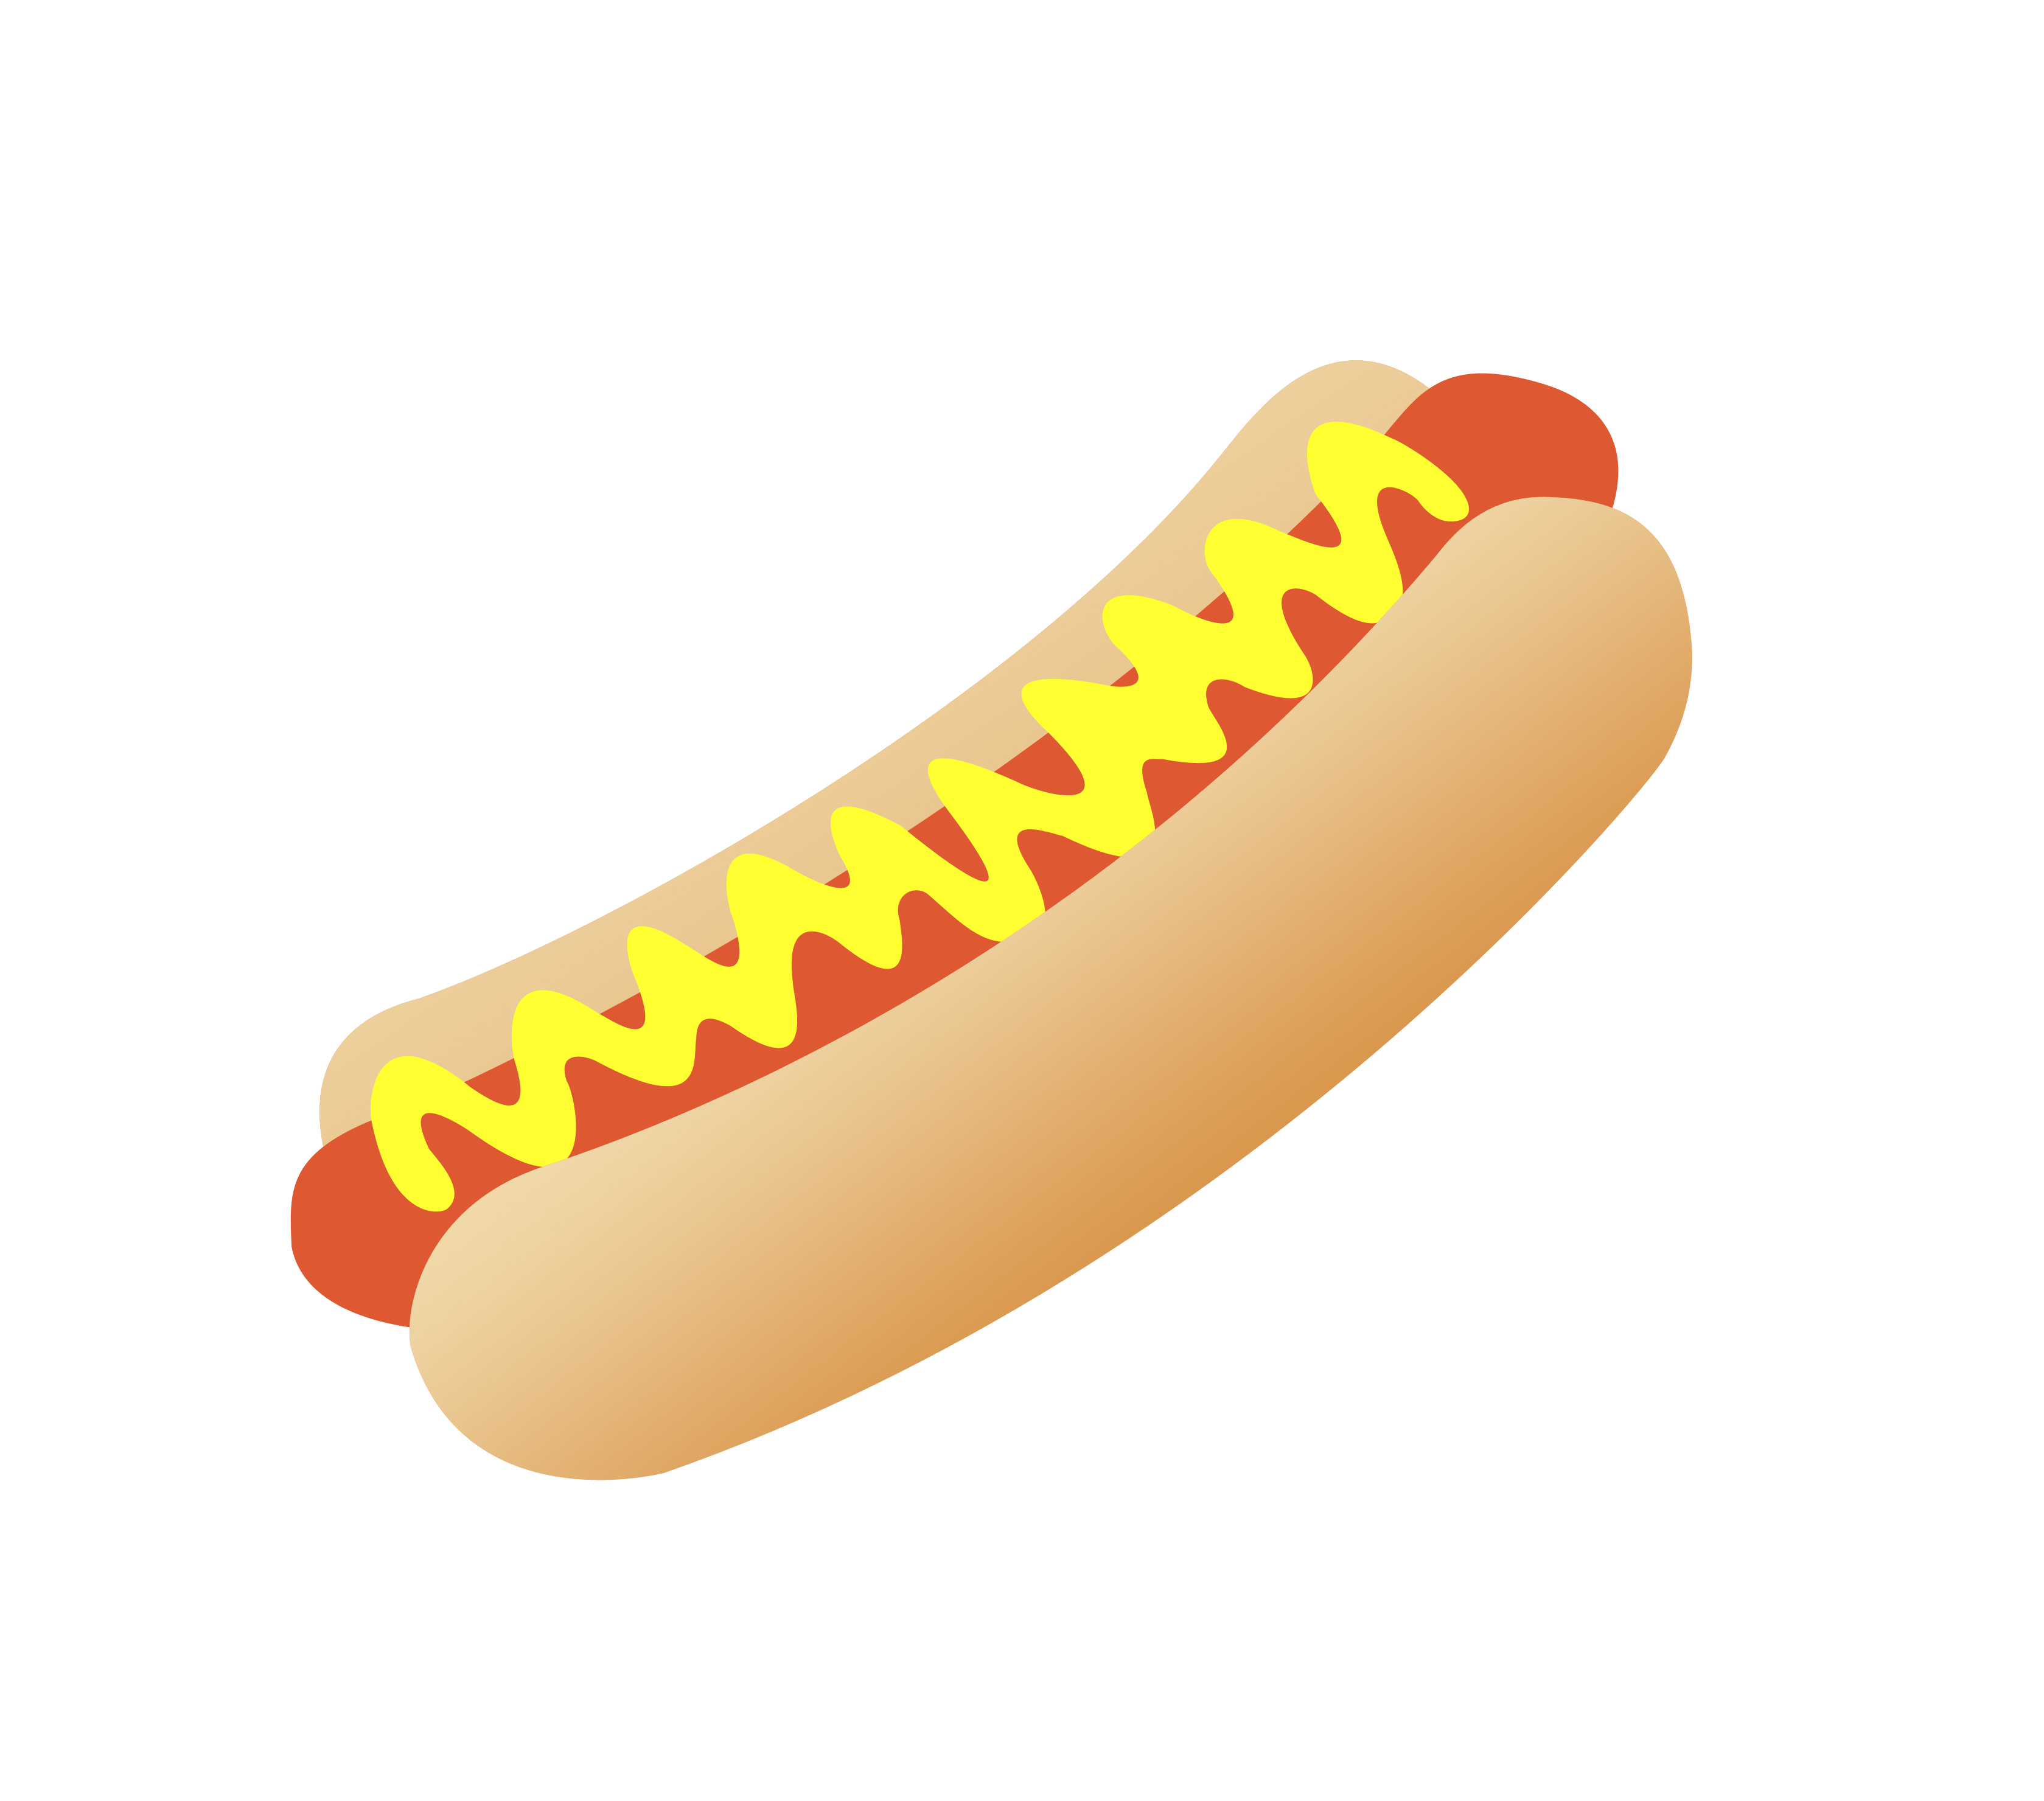 Hot Dog Clipart Black And White Cute